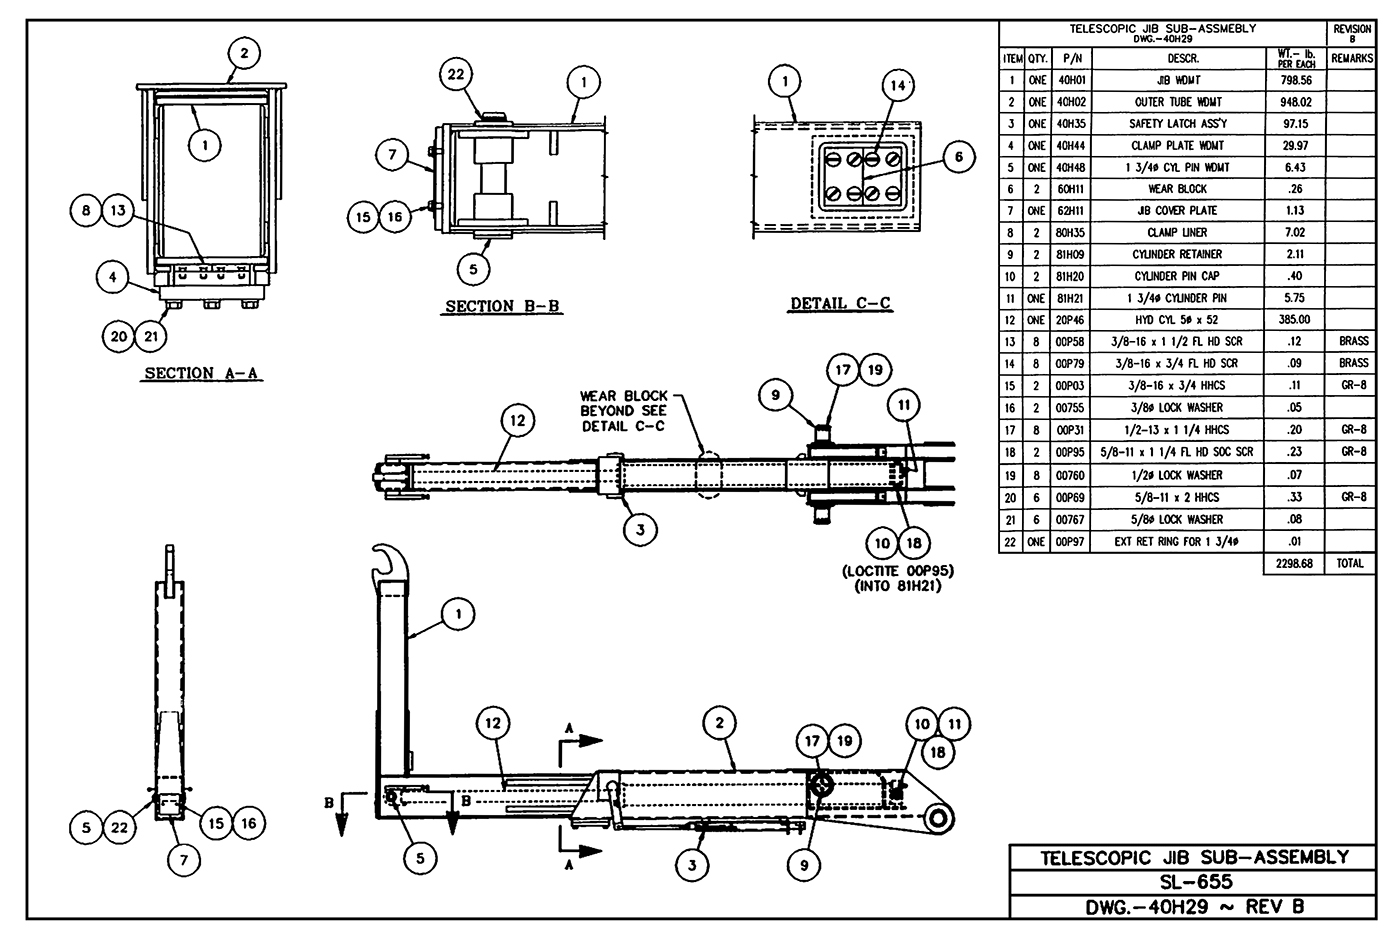 SL-655 Telescopic Jib Sub-Assembly Diagram